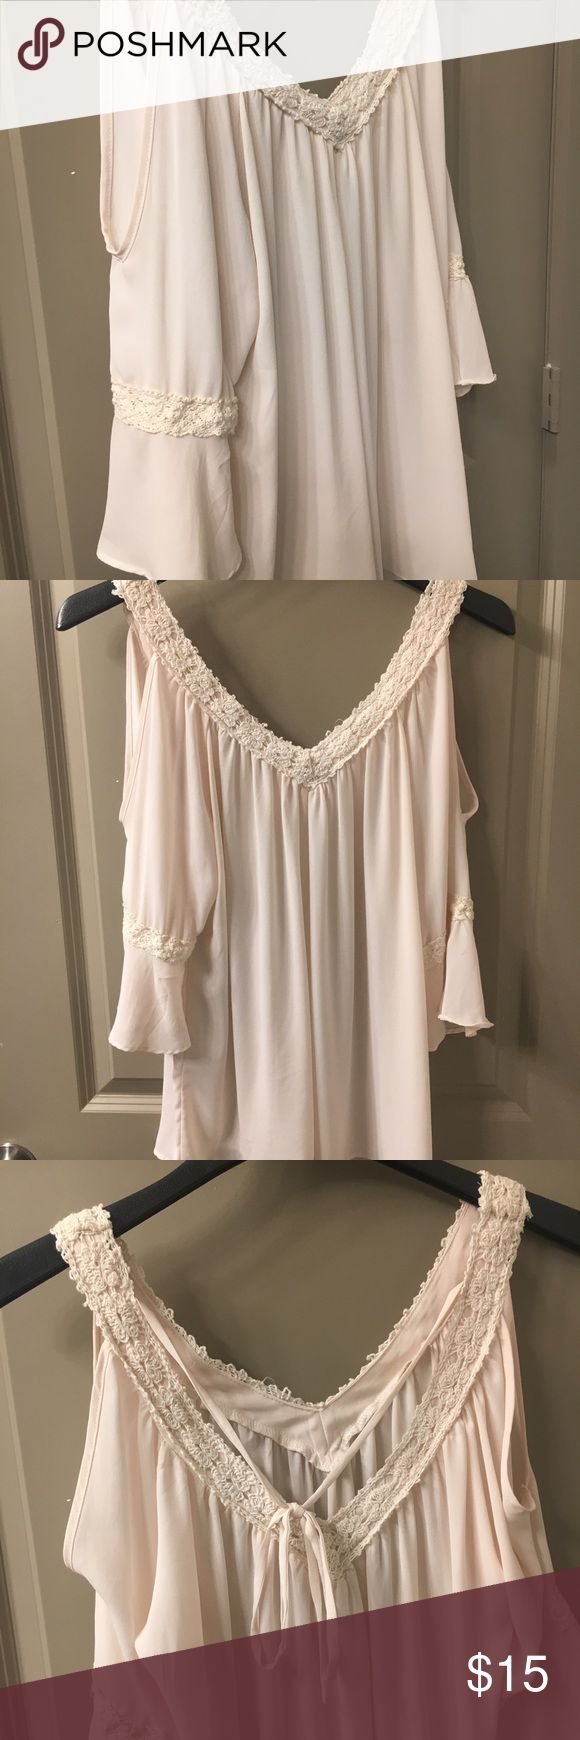 Cold Shoulder Flowy Bell Sleeve Blouse Has a crochet trim and strings to tie so you can adjust the size a bit. Charming Charlie Tops Blouses